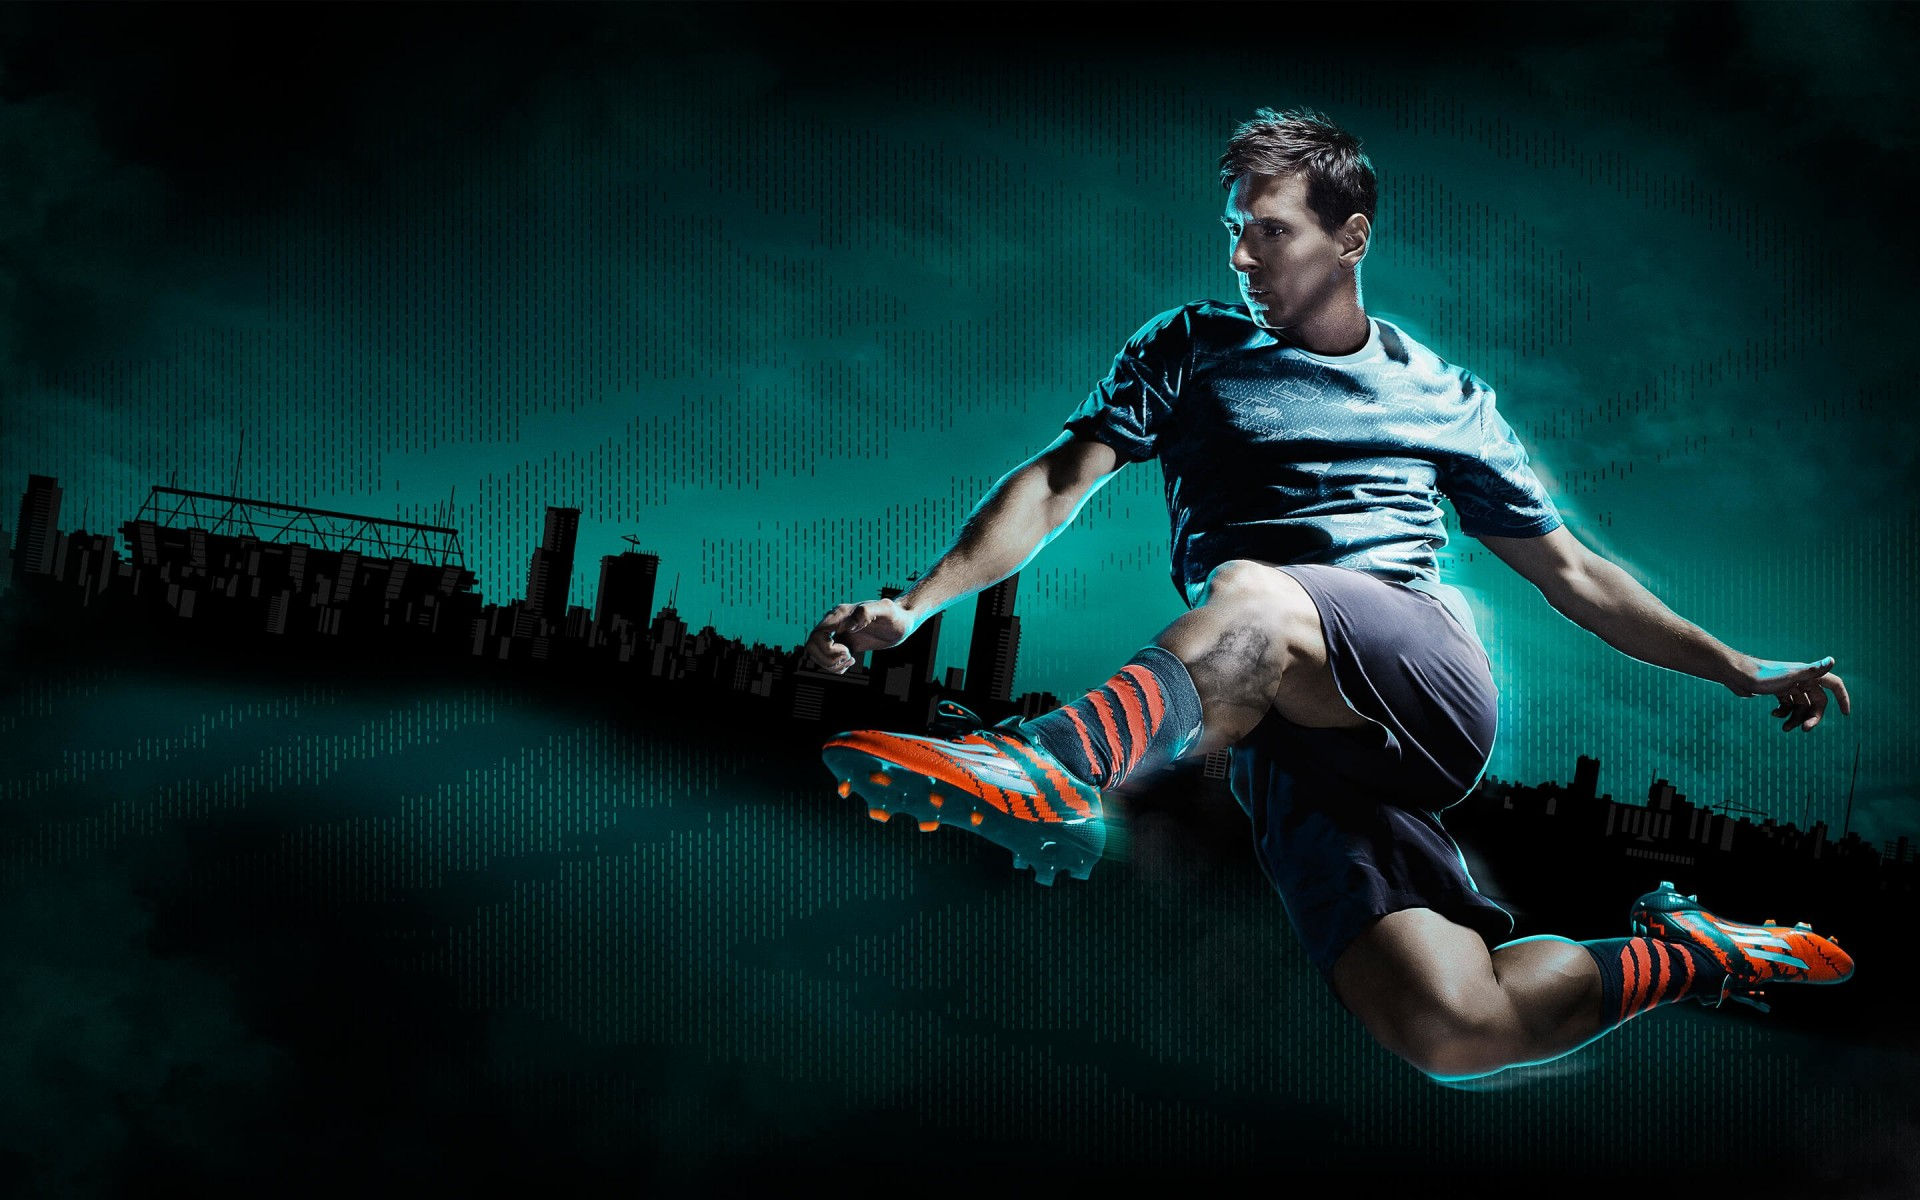 Lionel Messi Adidas Commercial Wallpaper for Desktop 1920x1200